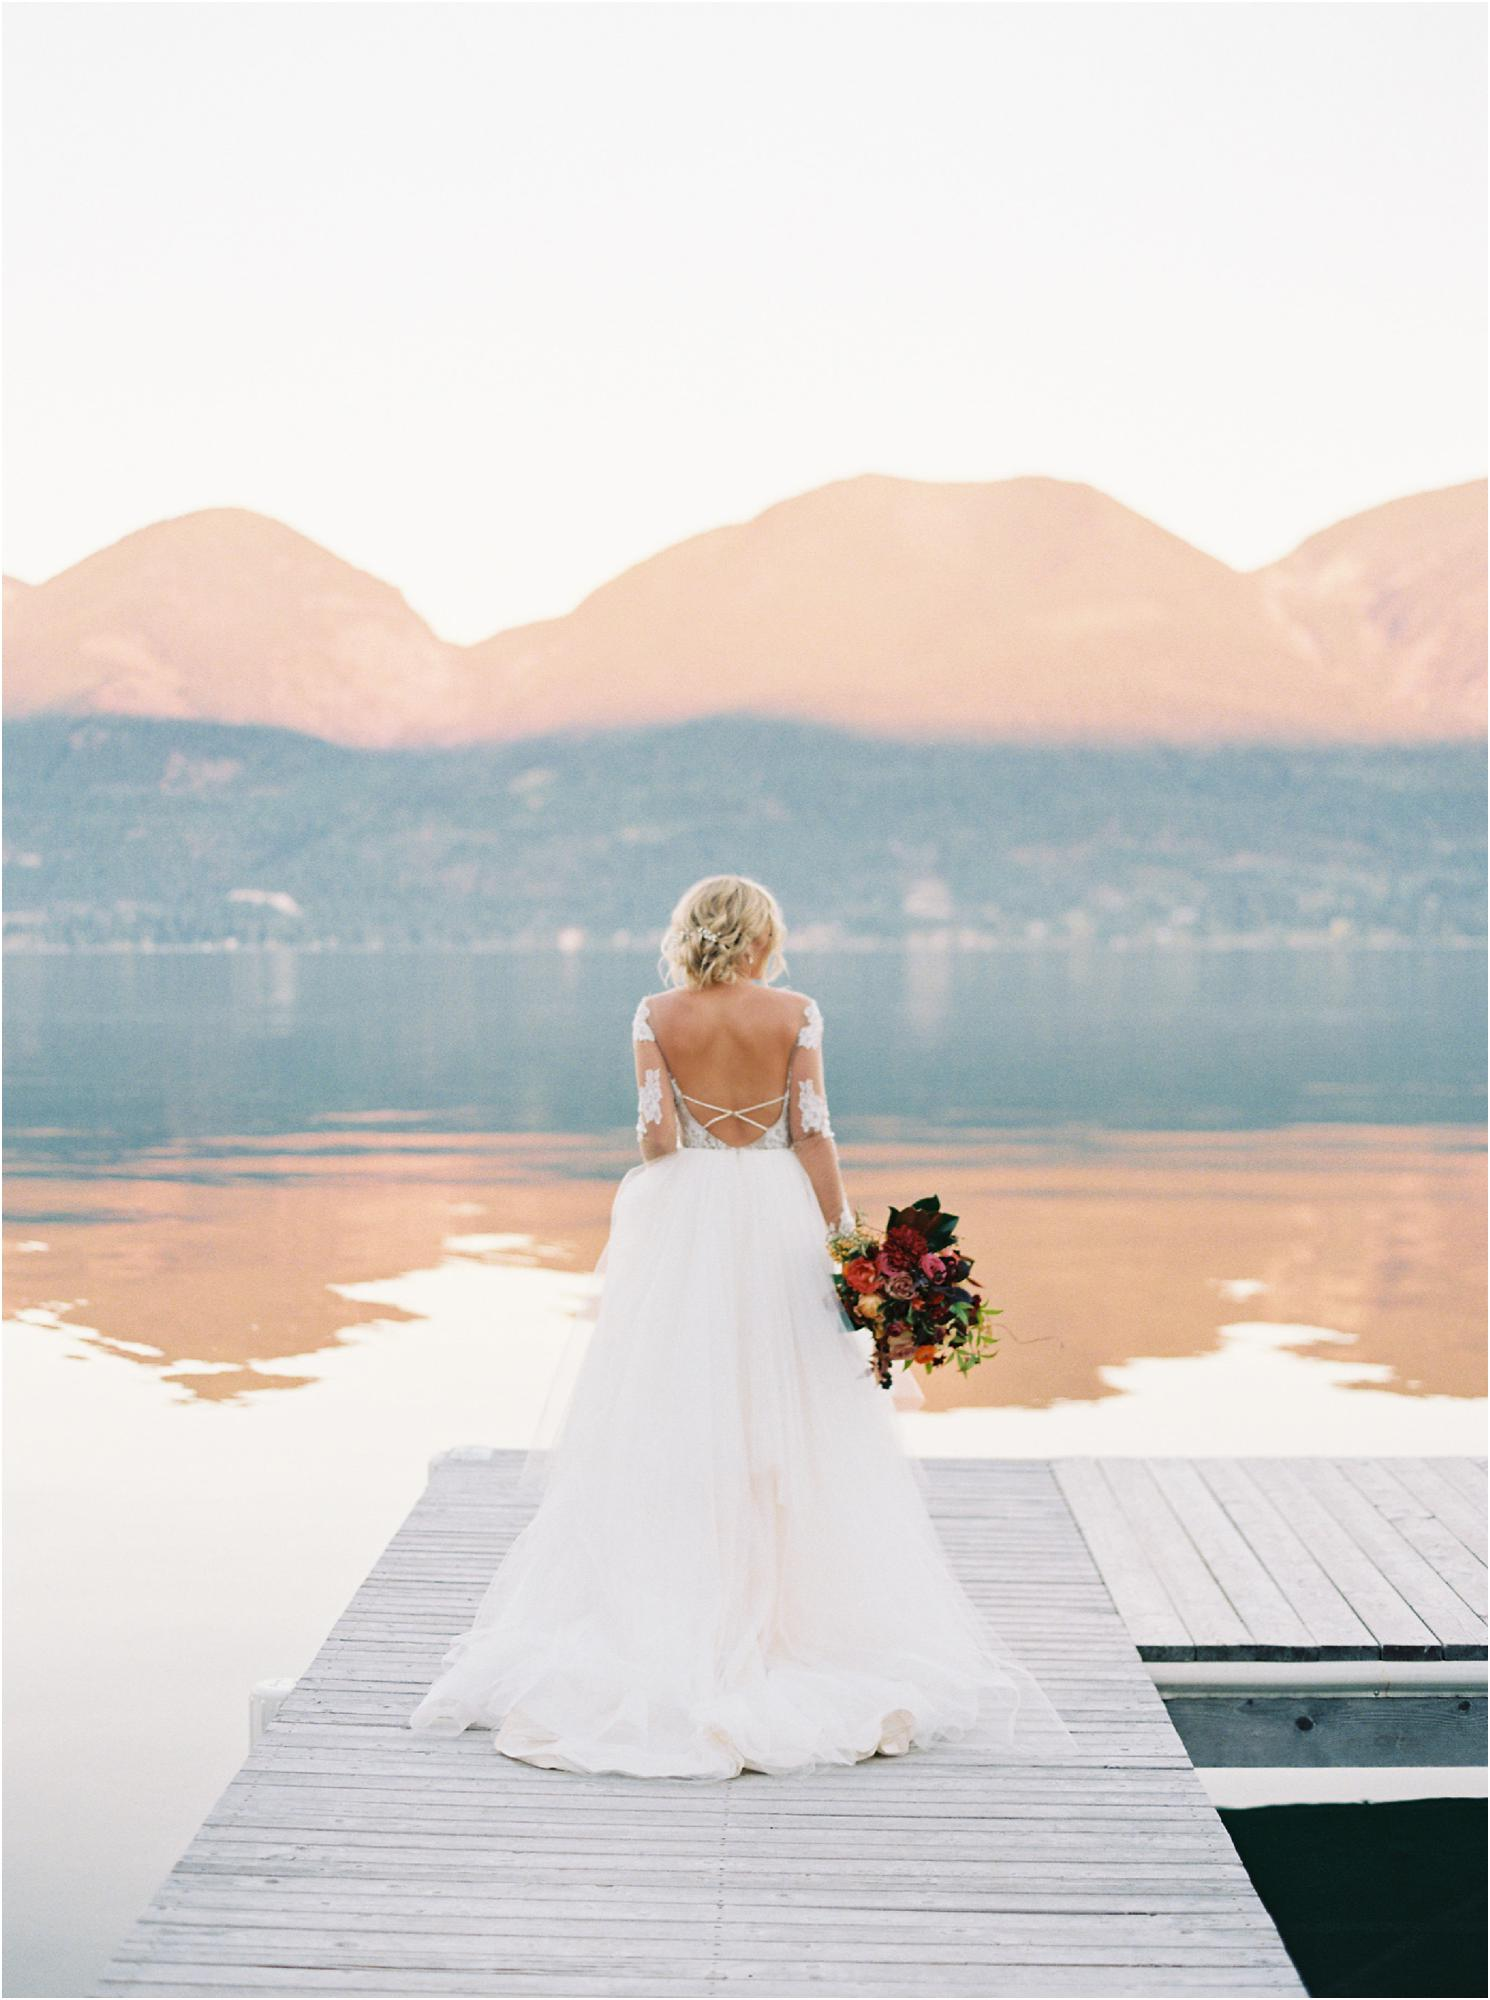 Flathead Lake Wedding Inspiration with Goldfinch Events and Design http://goldfinchevents.com Mum's Flowers http://mumsflowers.net